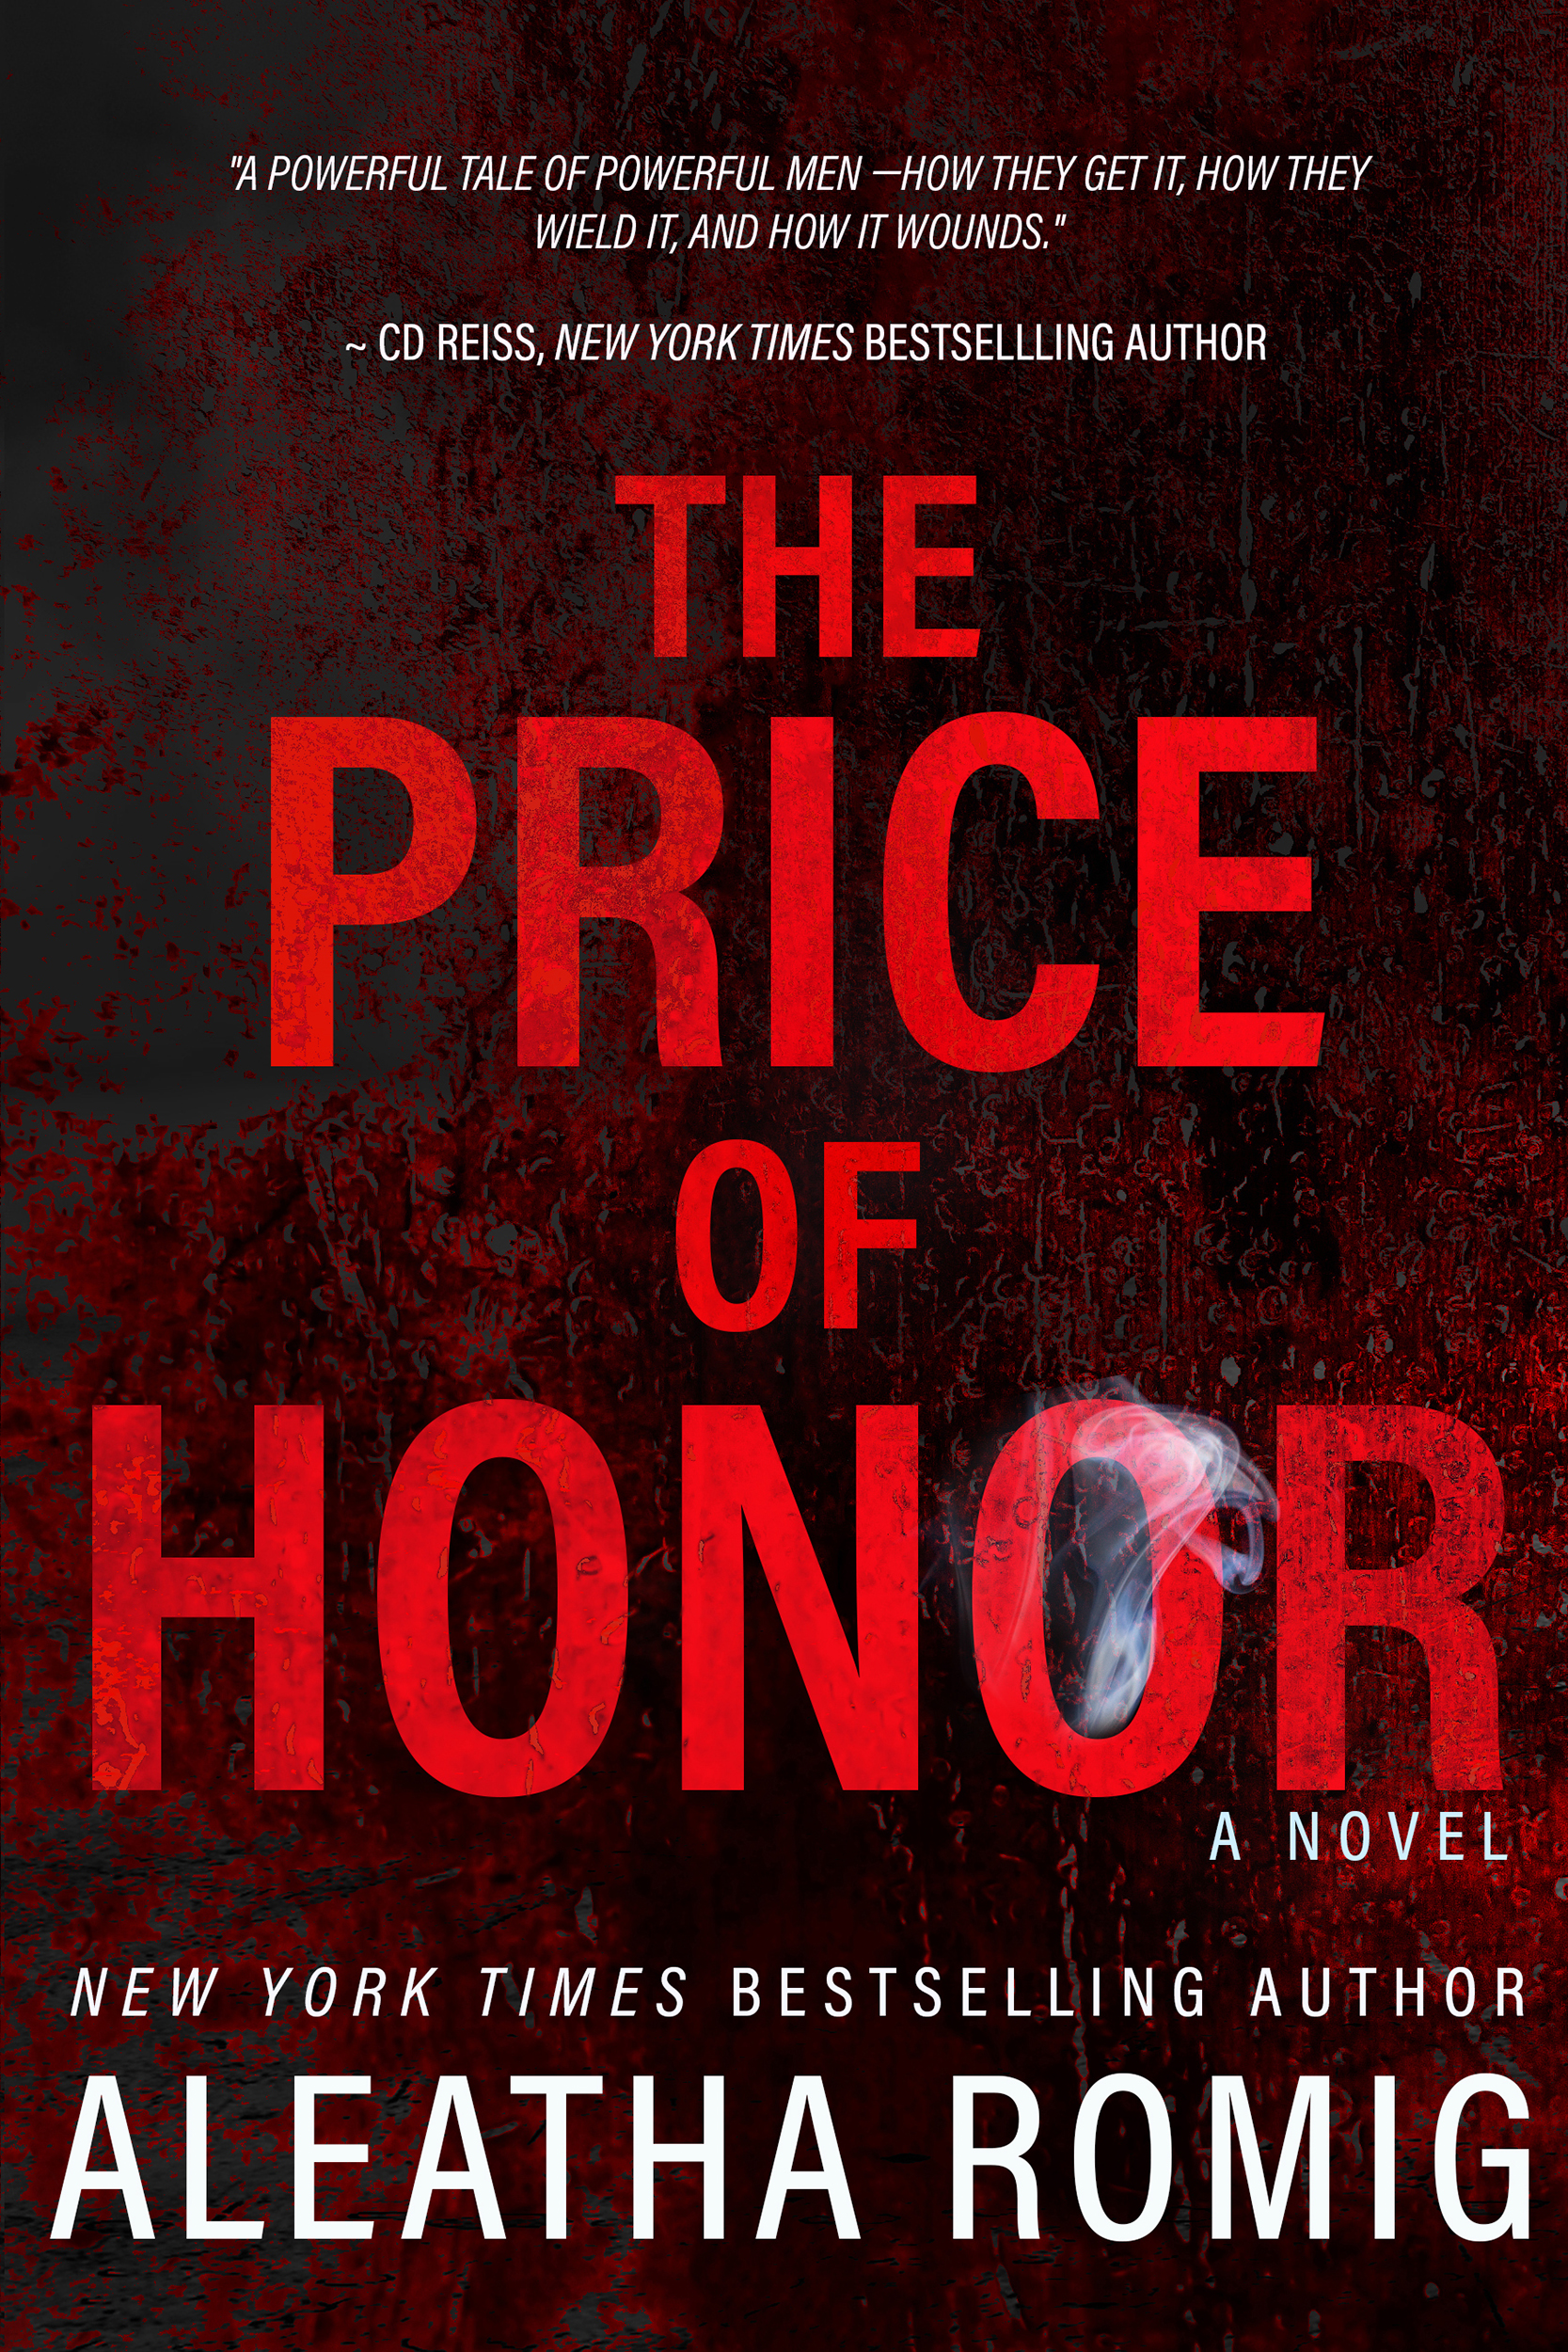 thePriceofHonor-FINAL-ebooklg